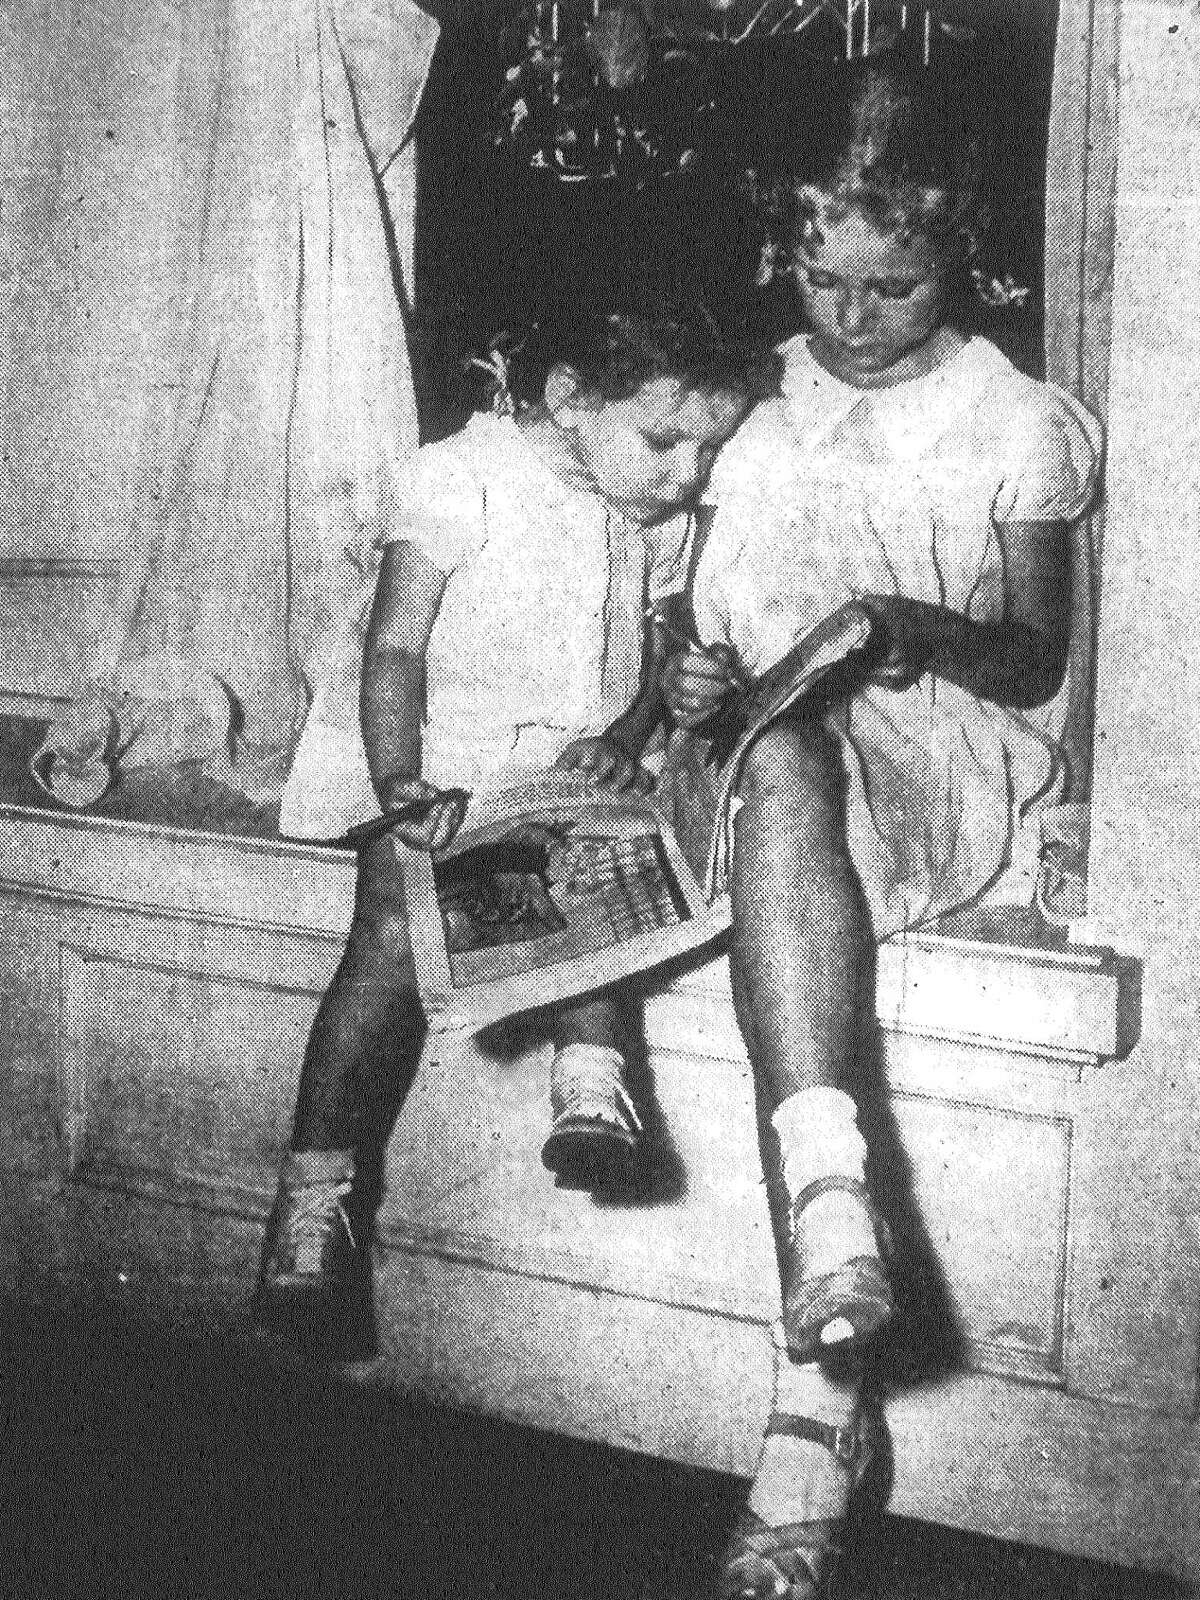 Judy Jones, who lives in the 300 block of Joliet St., explains to her little sister, Scharlie, just how coloring and other activities are staged at the school where Judy will start in the next day or two. The children's father is missing on Bataan. Published in the San Antonio Express Sept. 5, 1943.